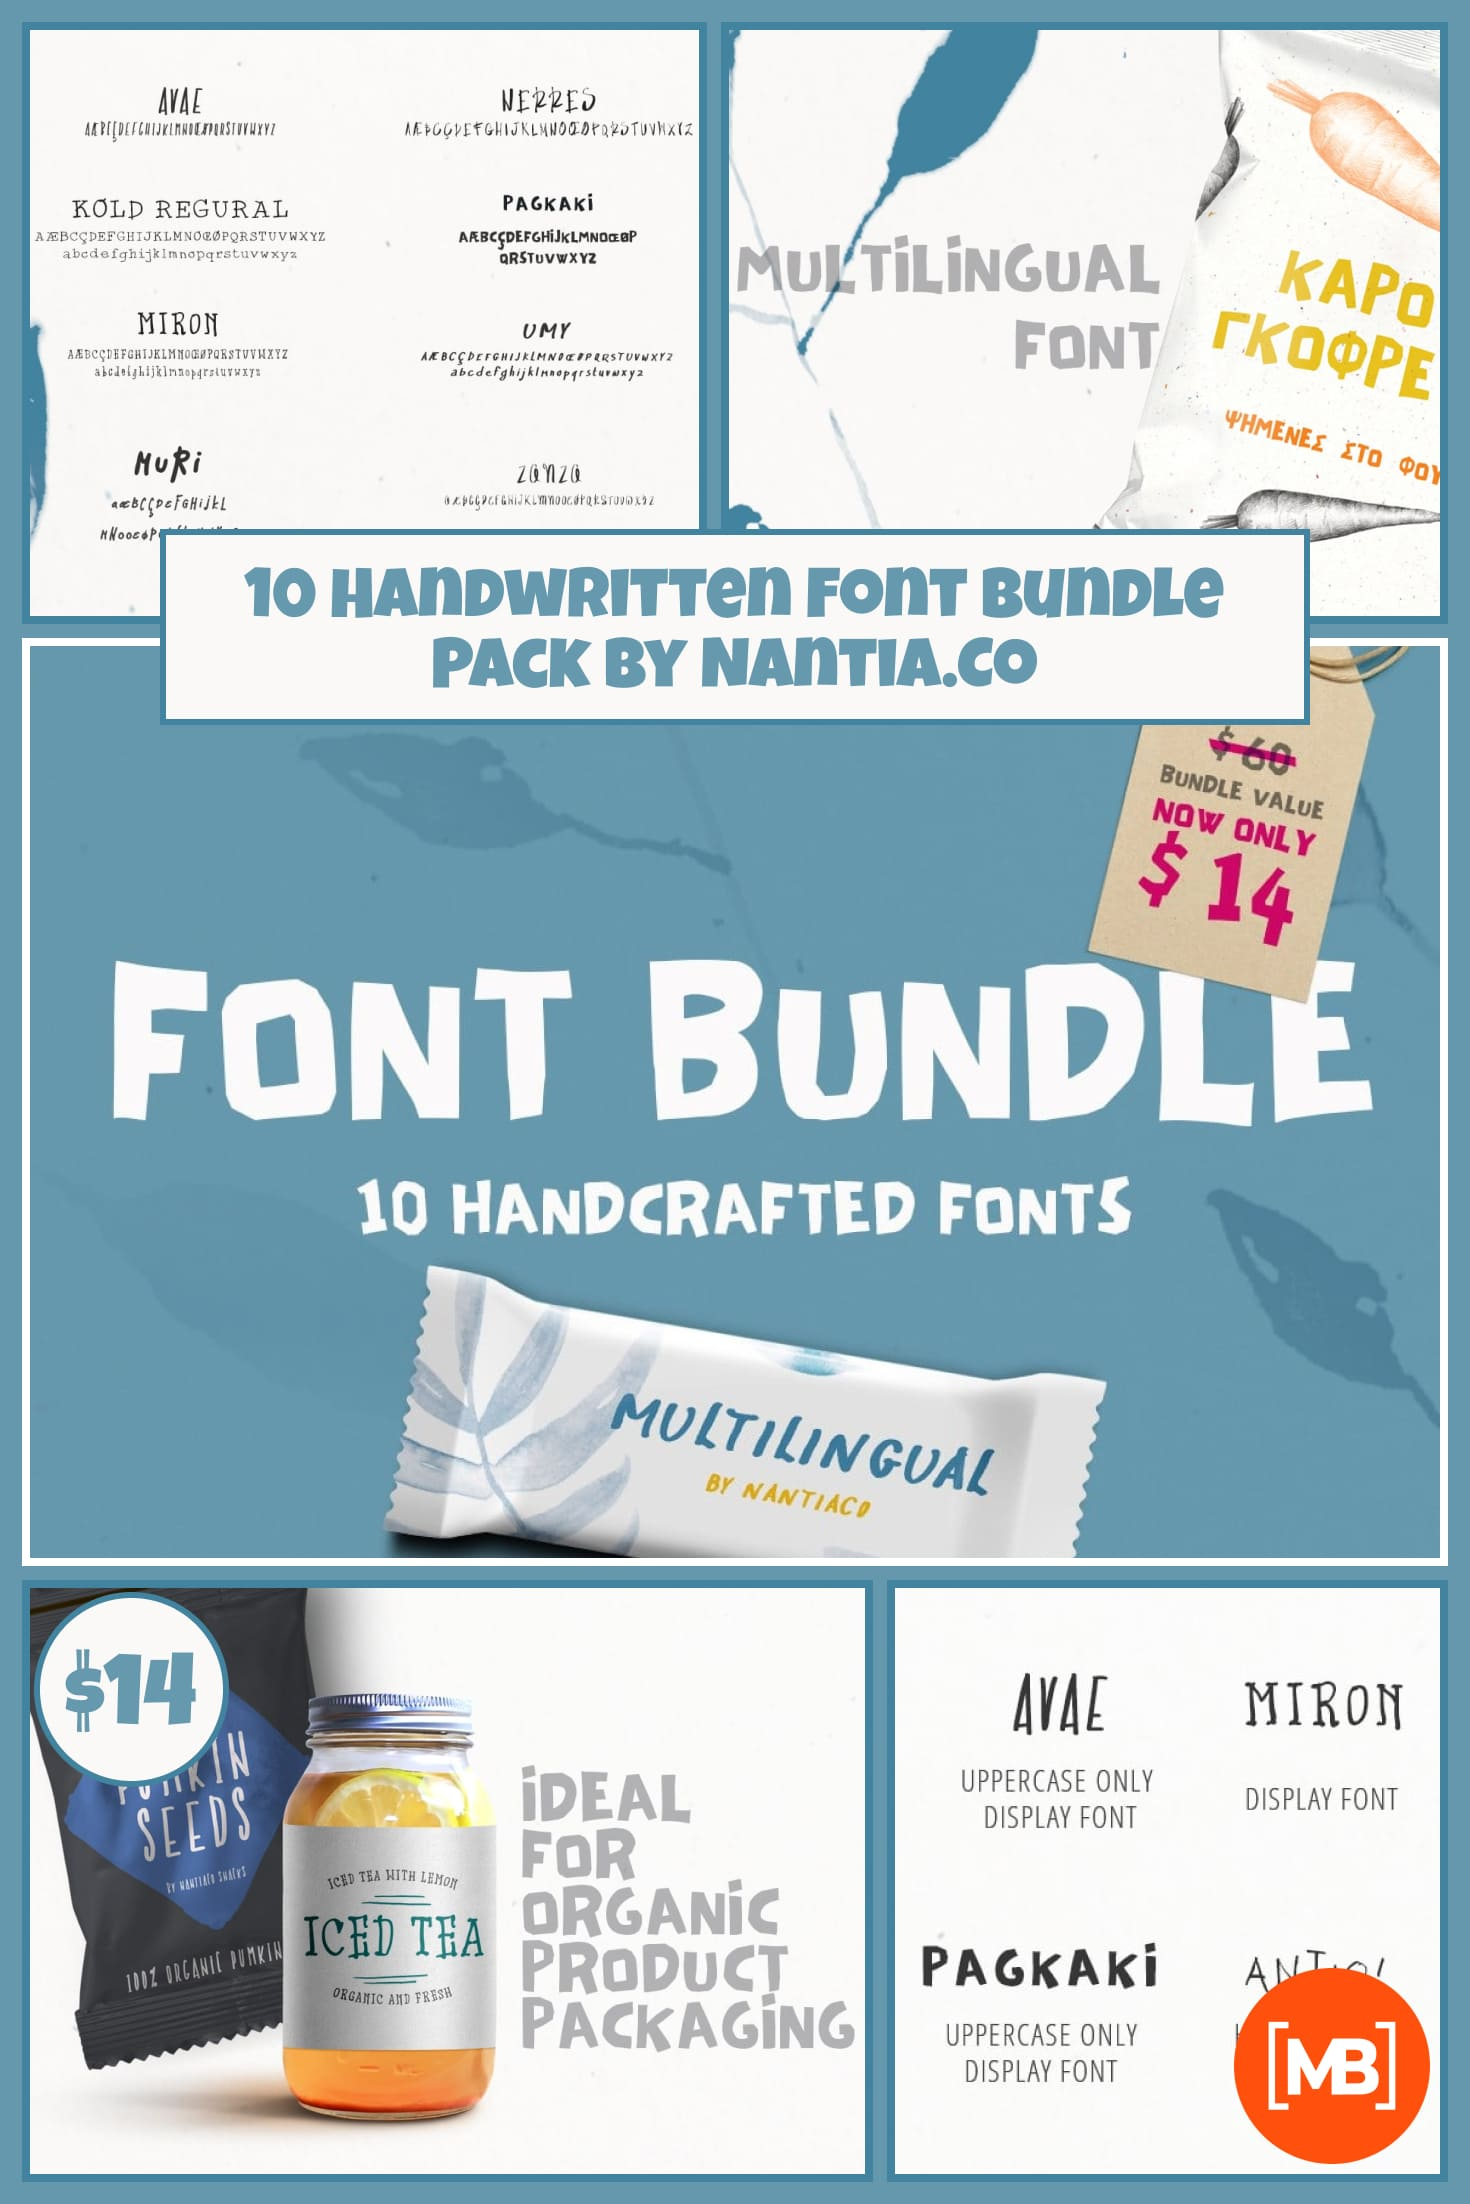 10 Handwritten Font Bundle Pack by Nantia.Co. Collage Image.